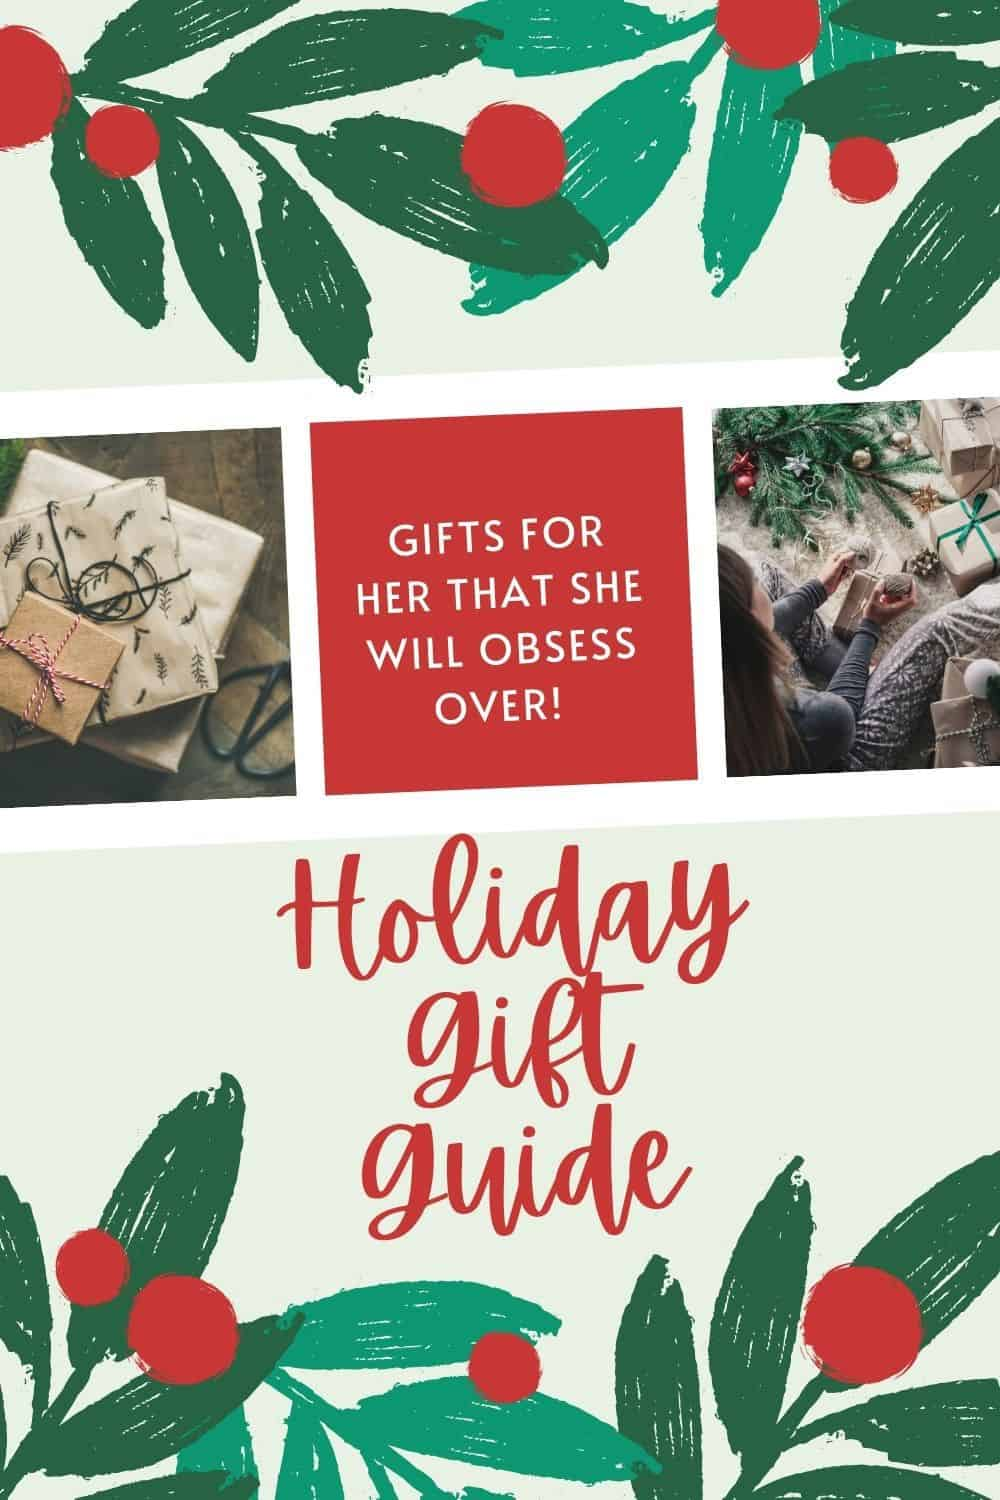 Gifts For Her She Will Obsess Over | Holiday Gift Guide